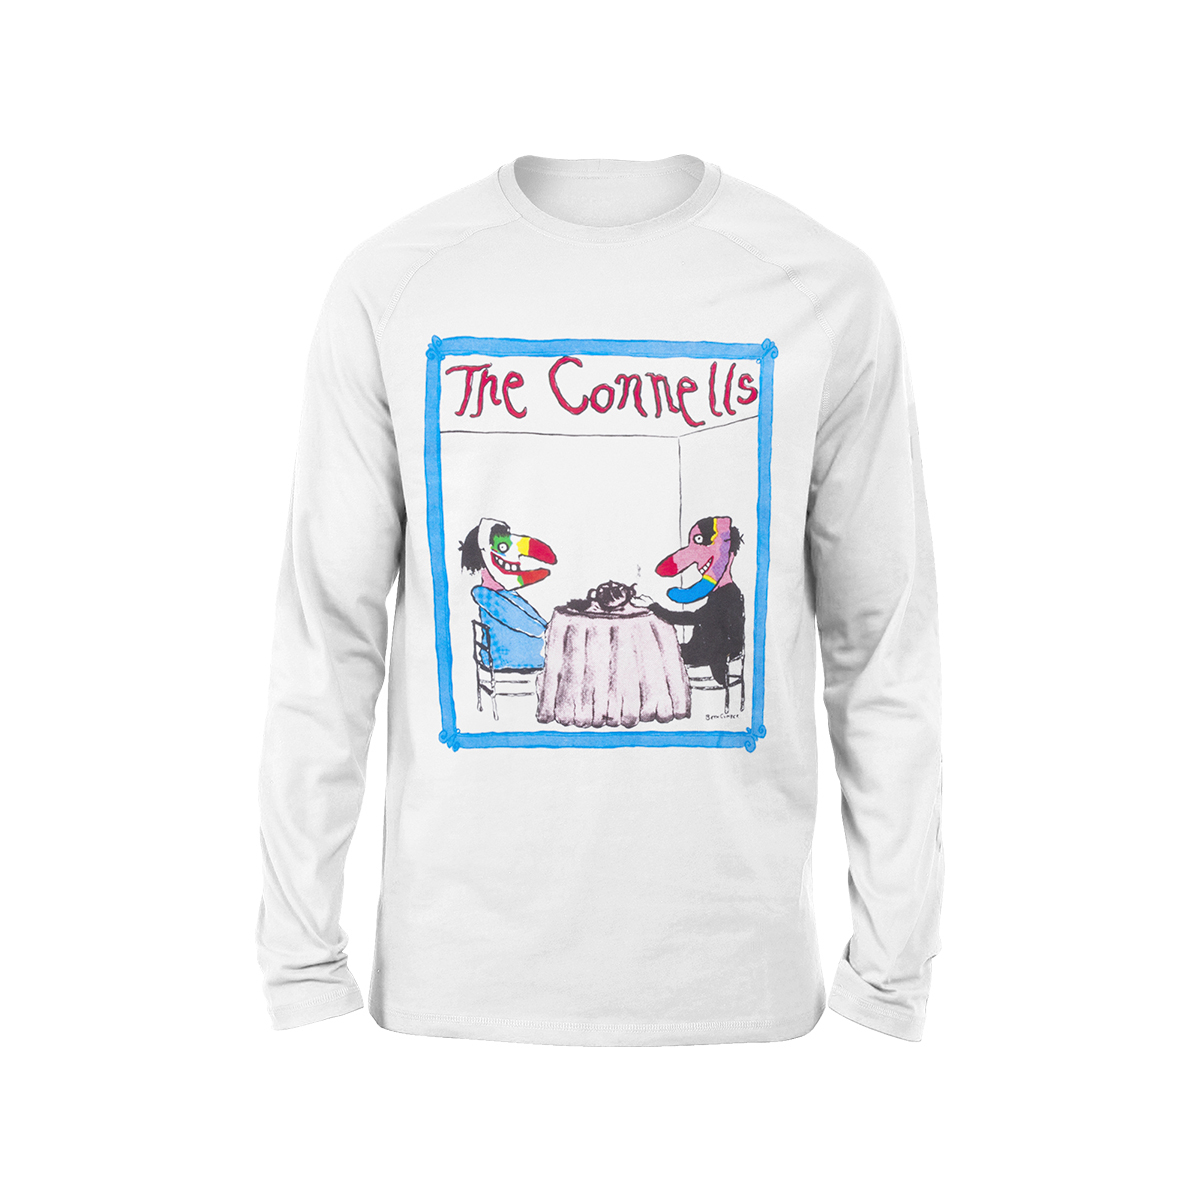 The Connells Fun & Games Long Sleeve T-shirt